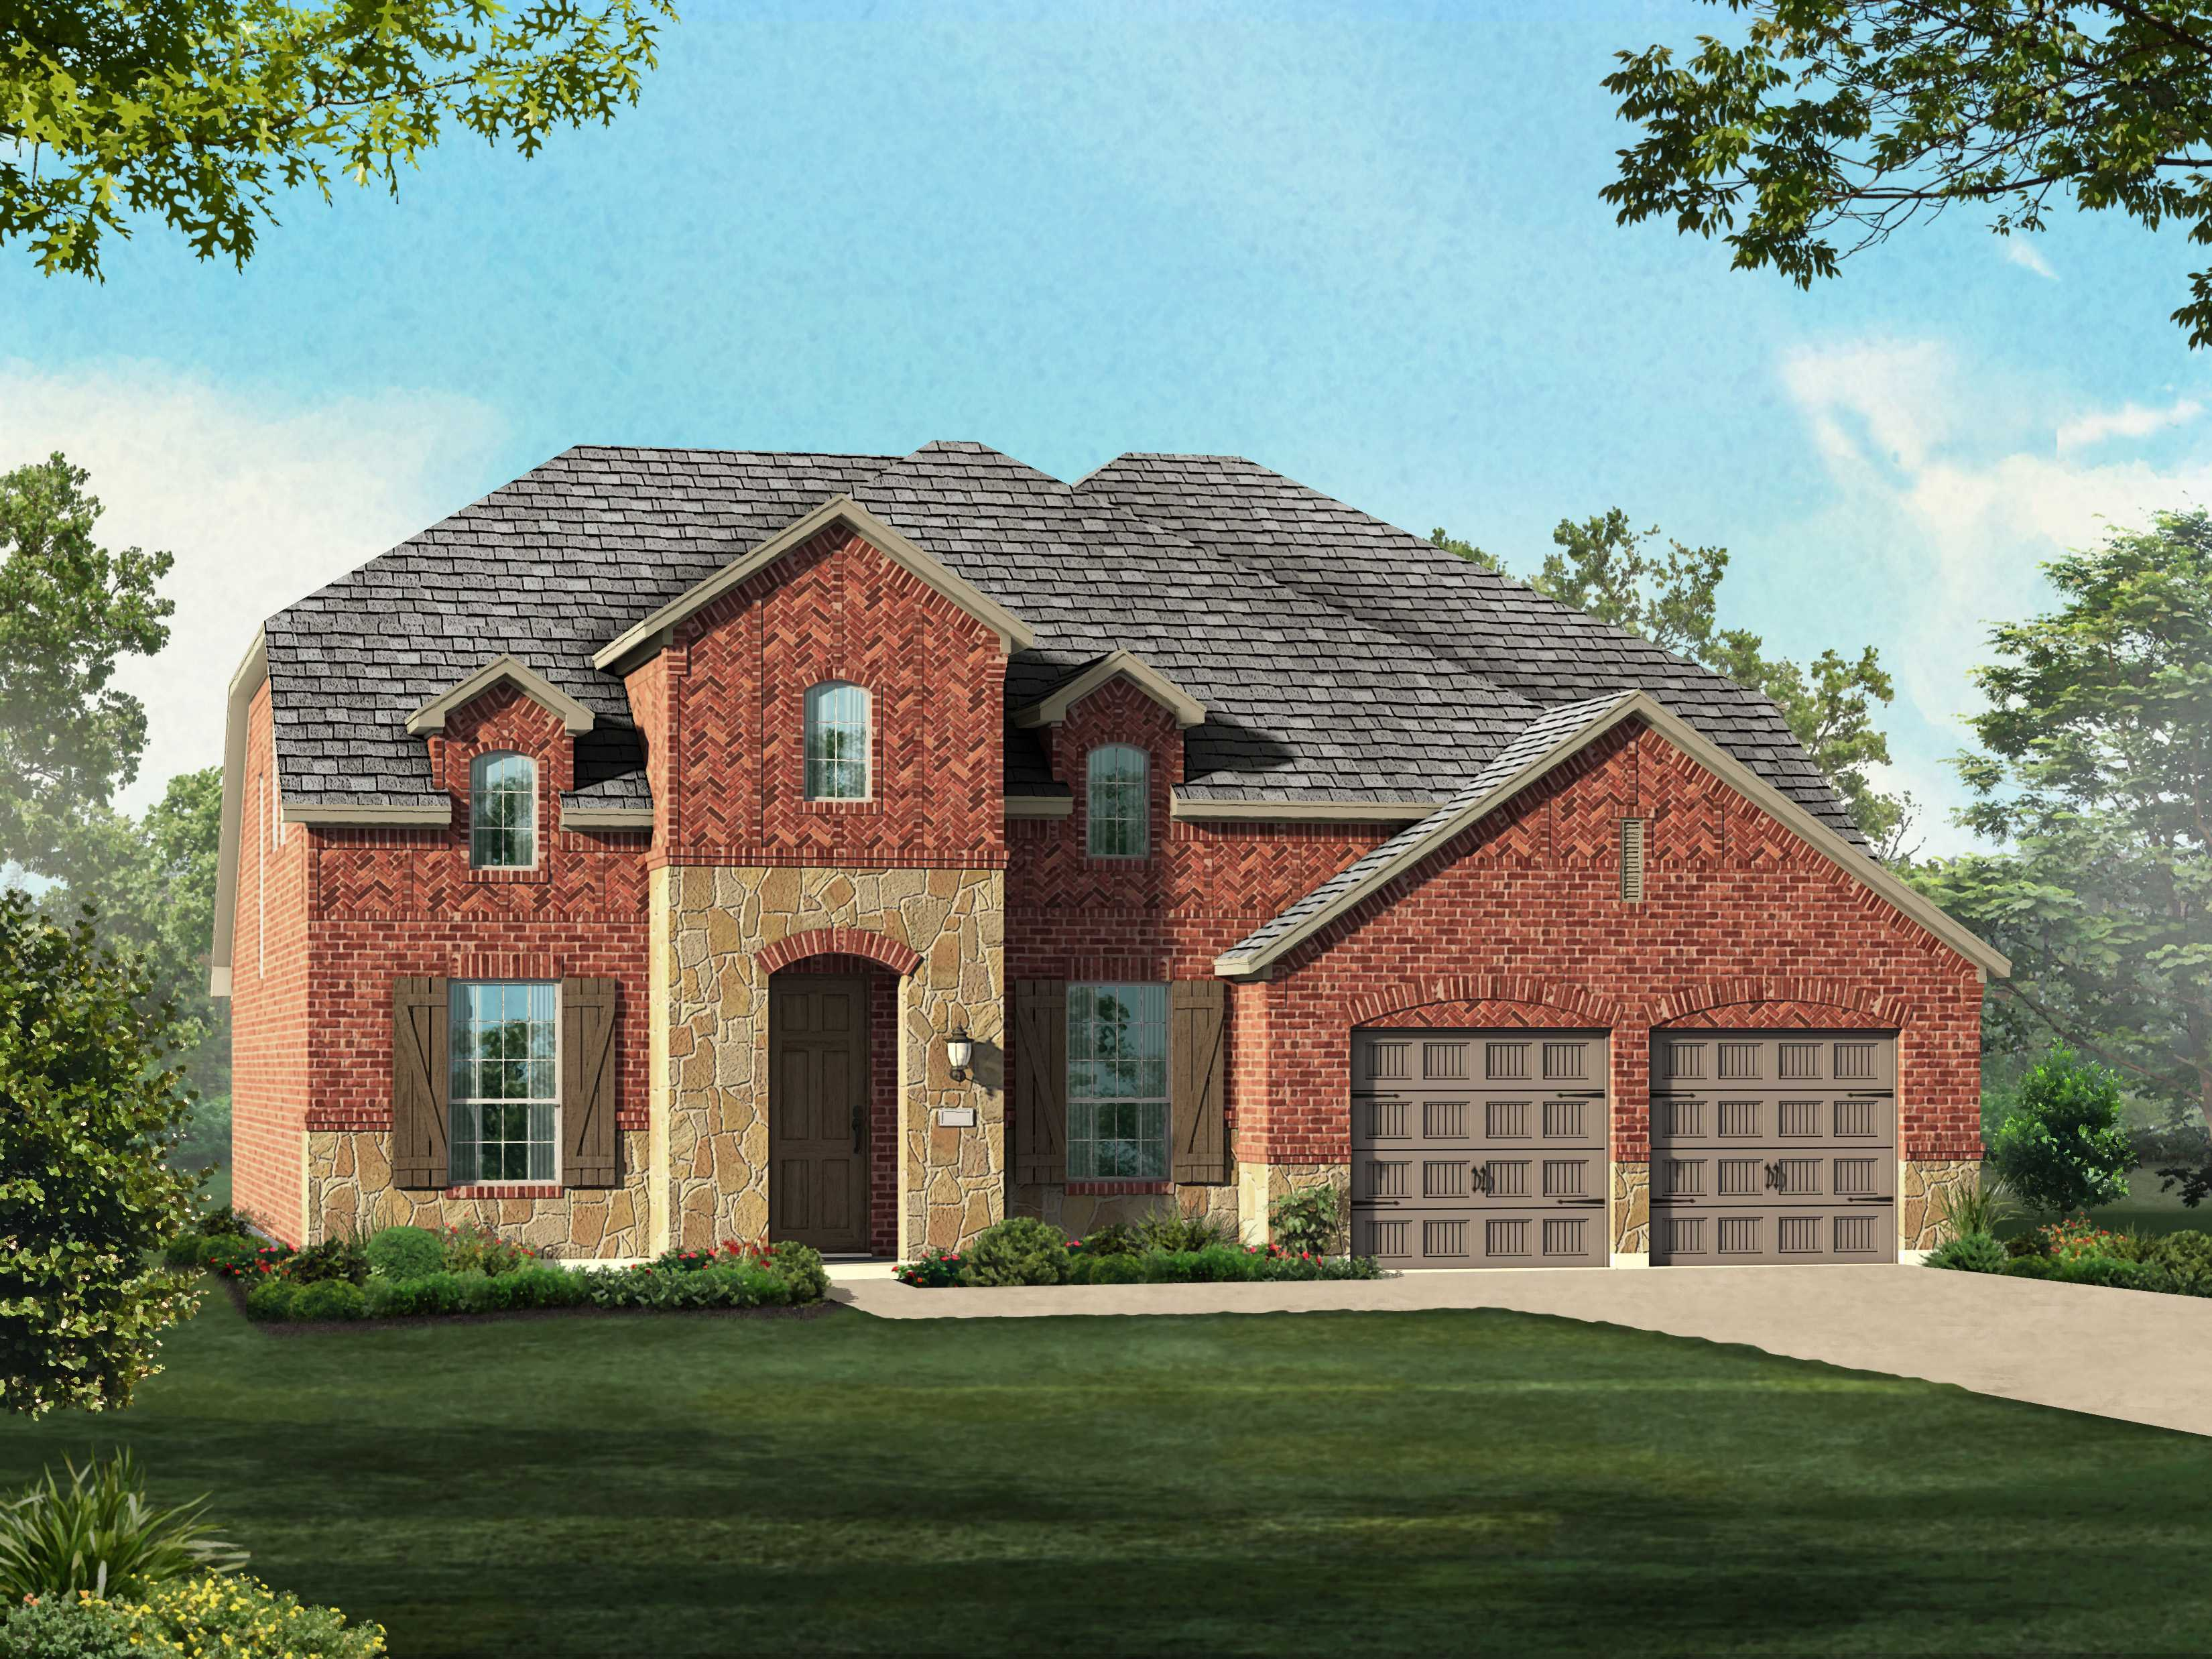 Single Family for Sale at Plan 205 1403 Belman Lane Forney, Texas 75126 United States